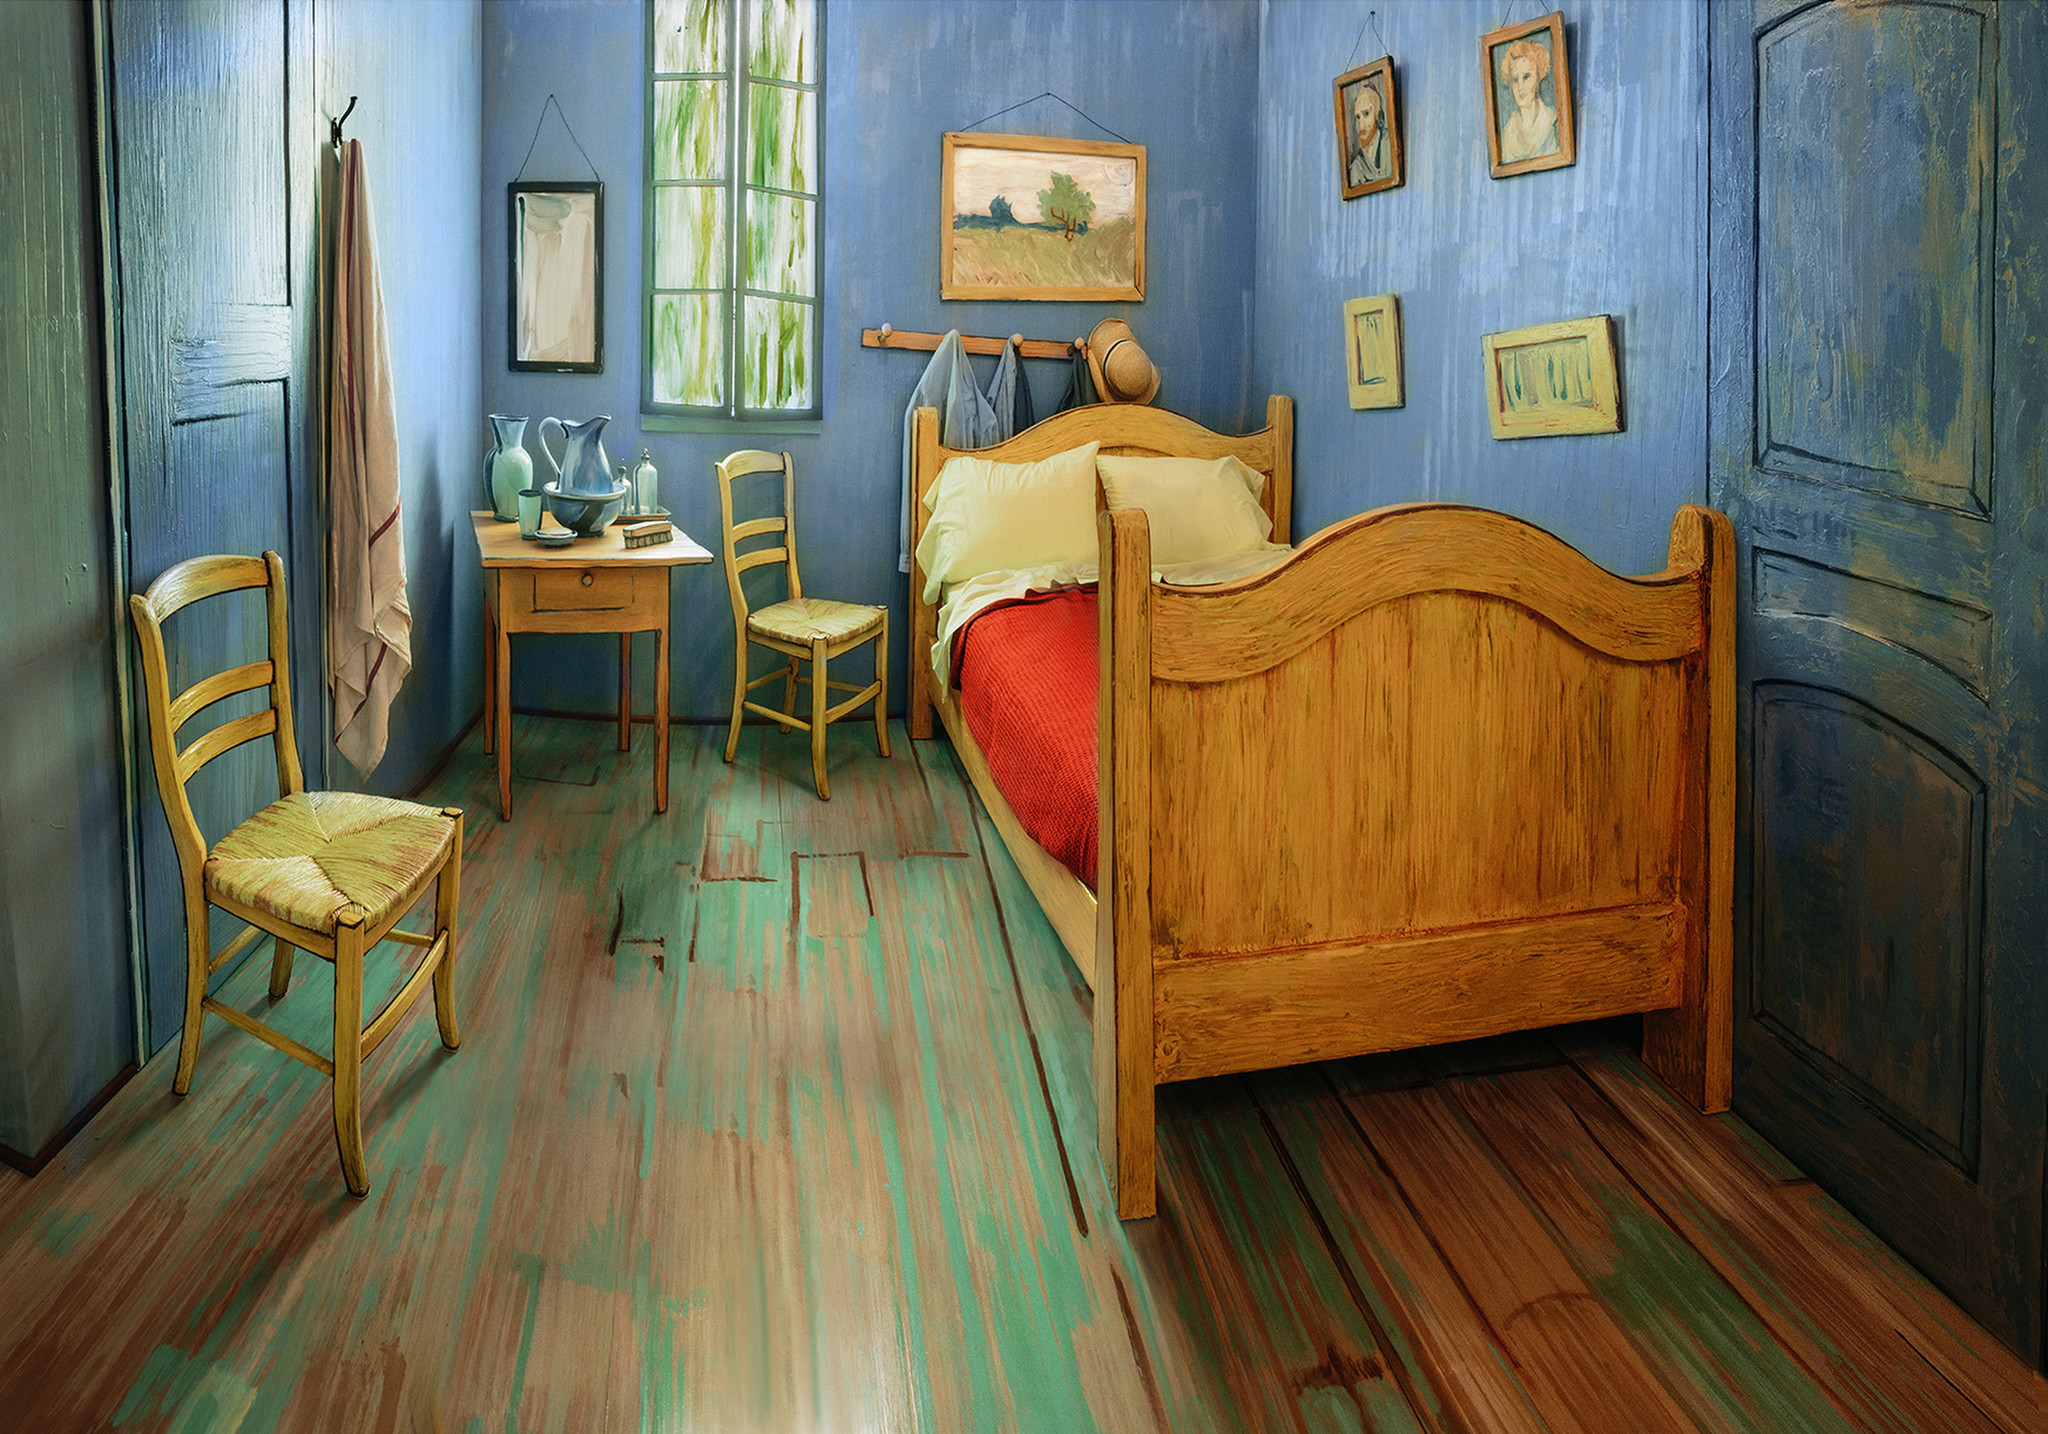 Attractive U0027Van Goghu0027s Bedroomsu0027 At Art Institute Show Artistu0027s Quest For Home    Chicago Tribune